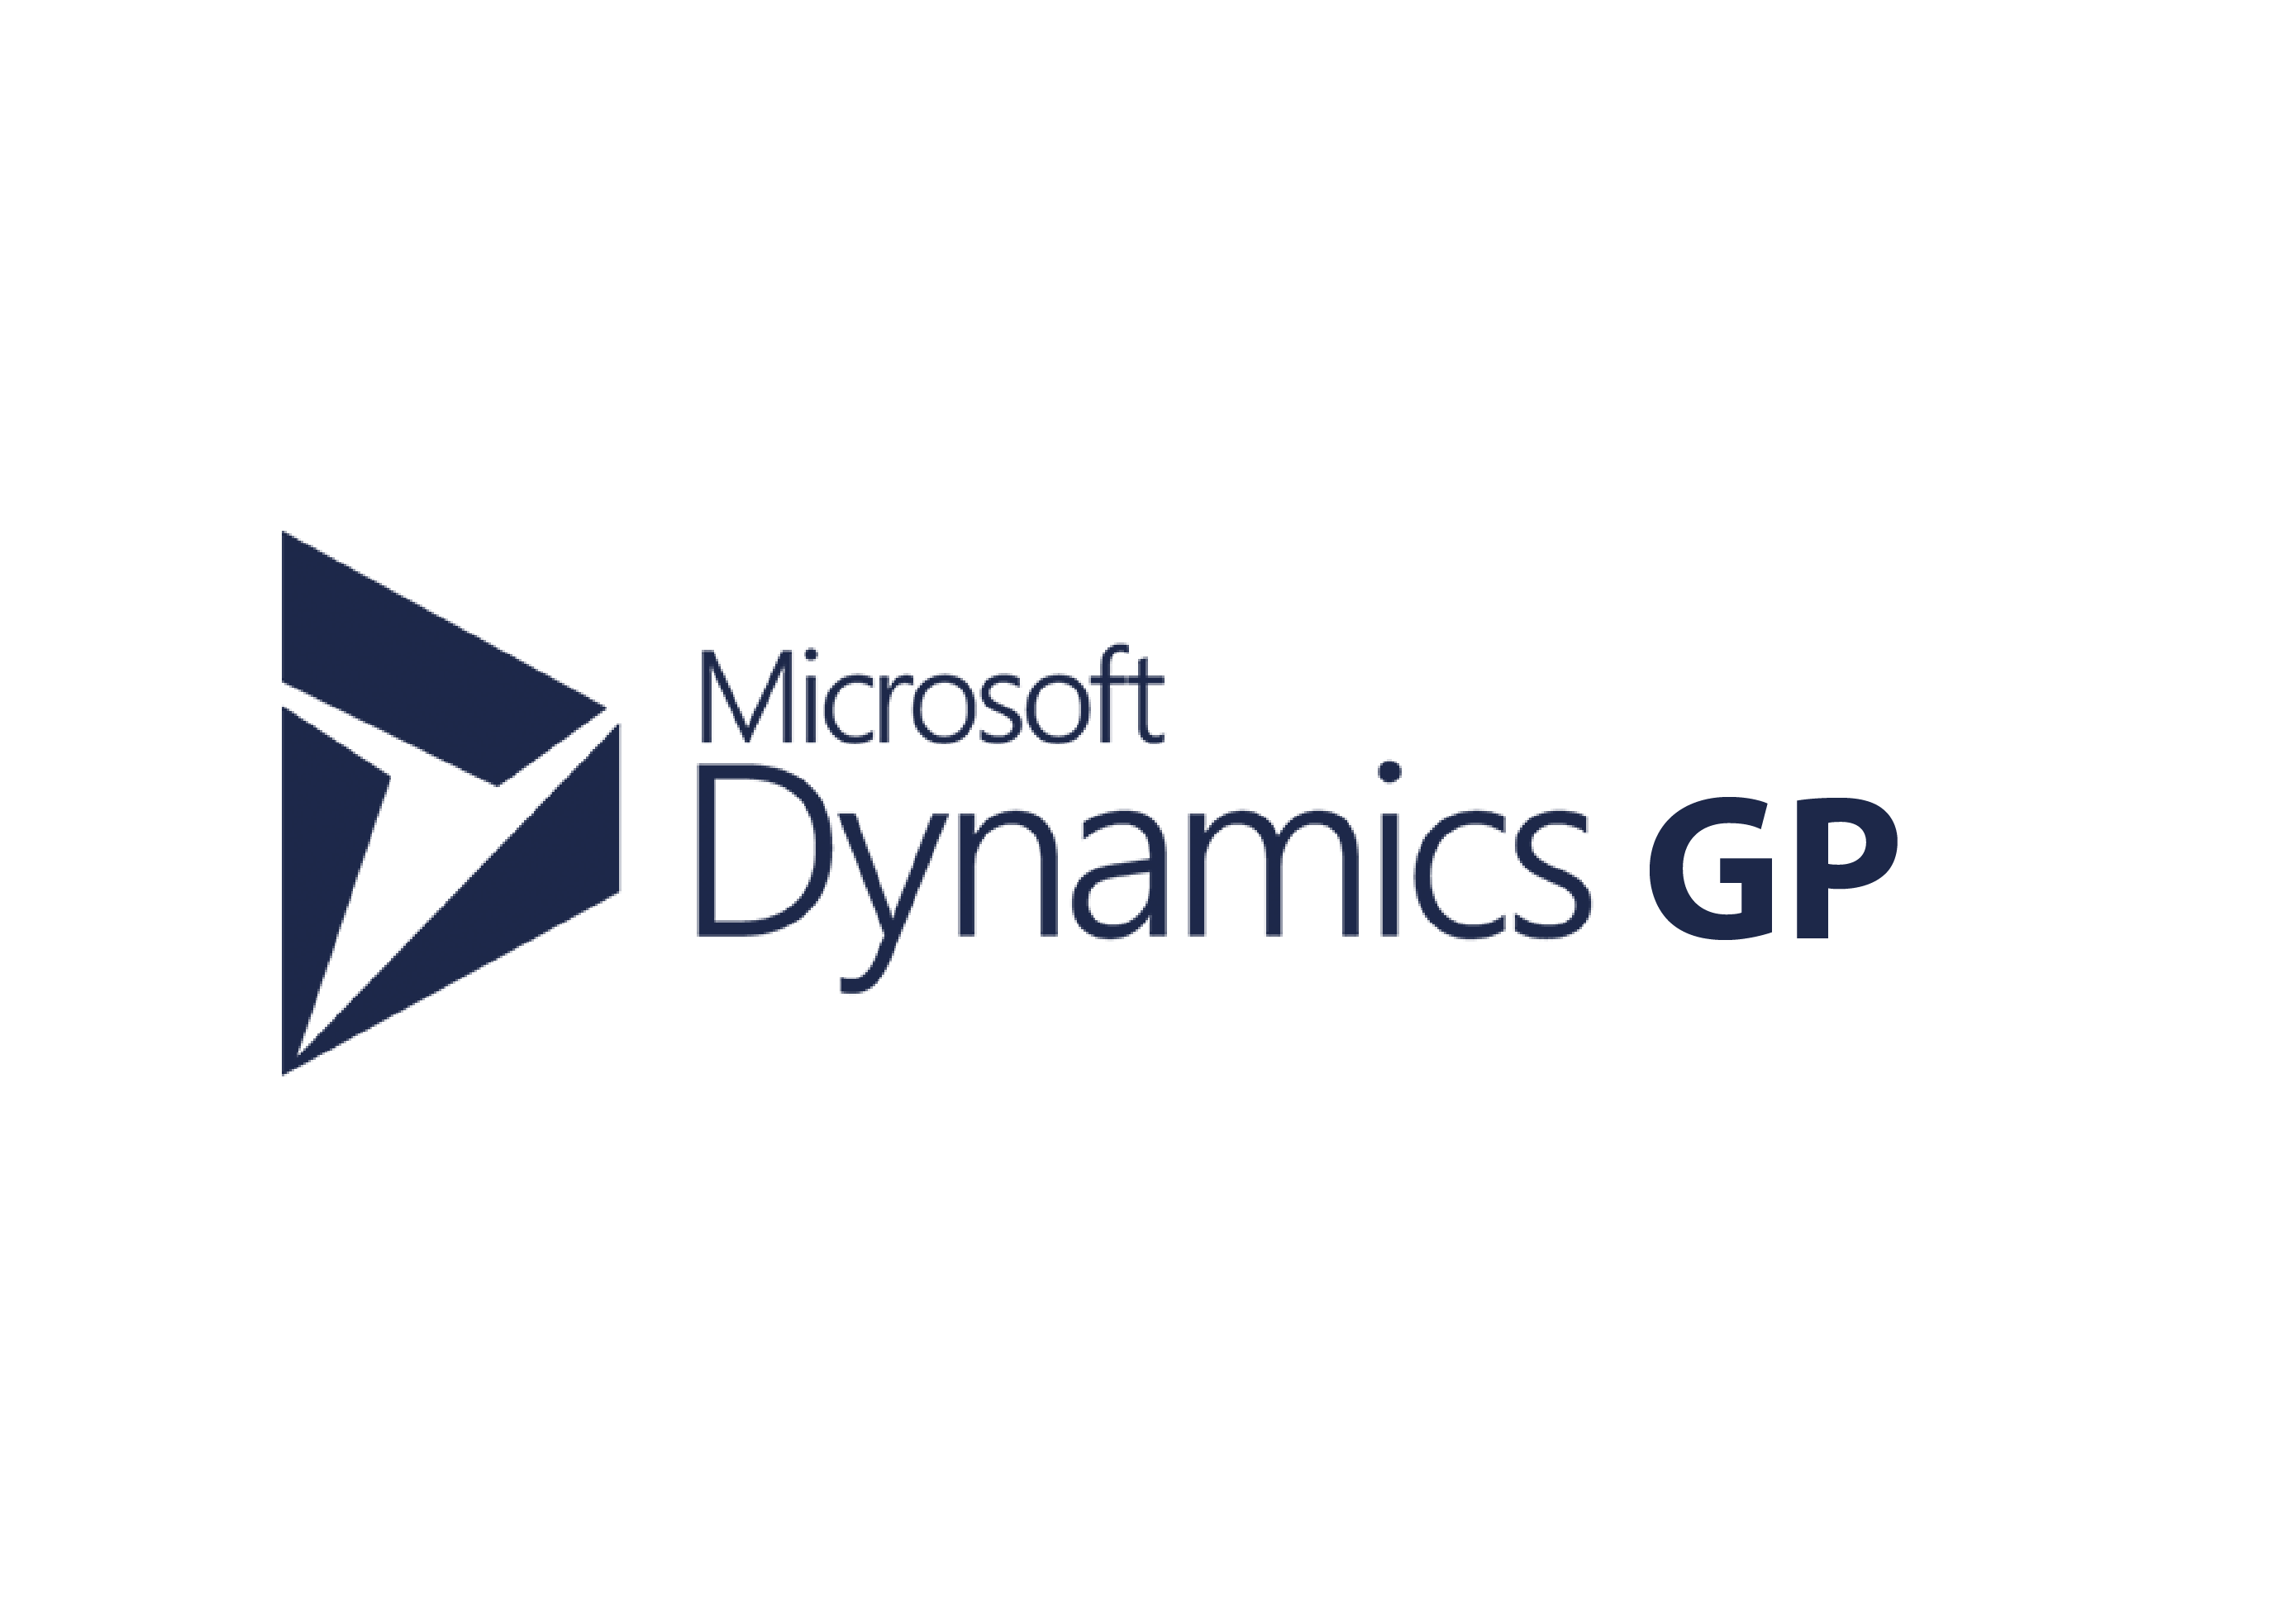 Microsoft dynamics gp payments